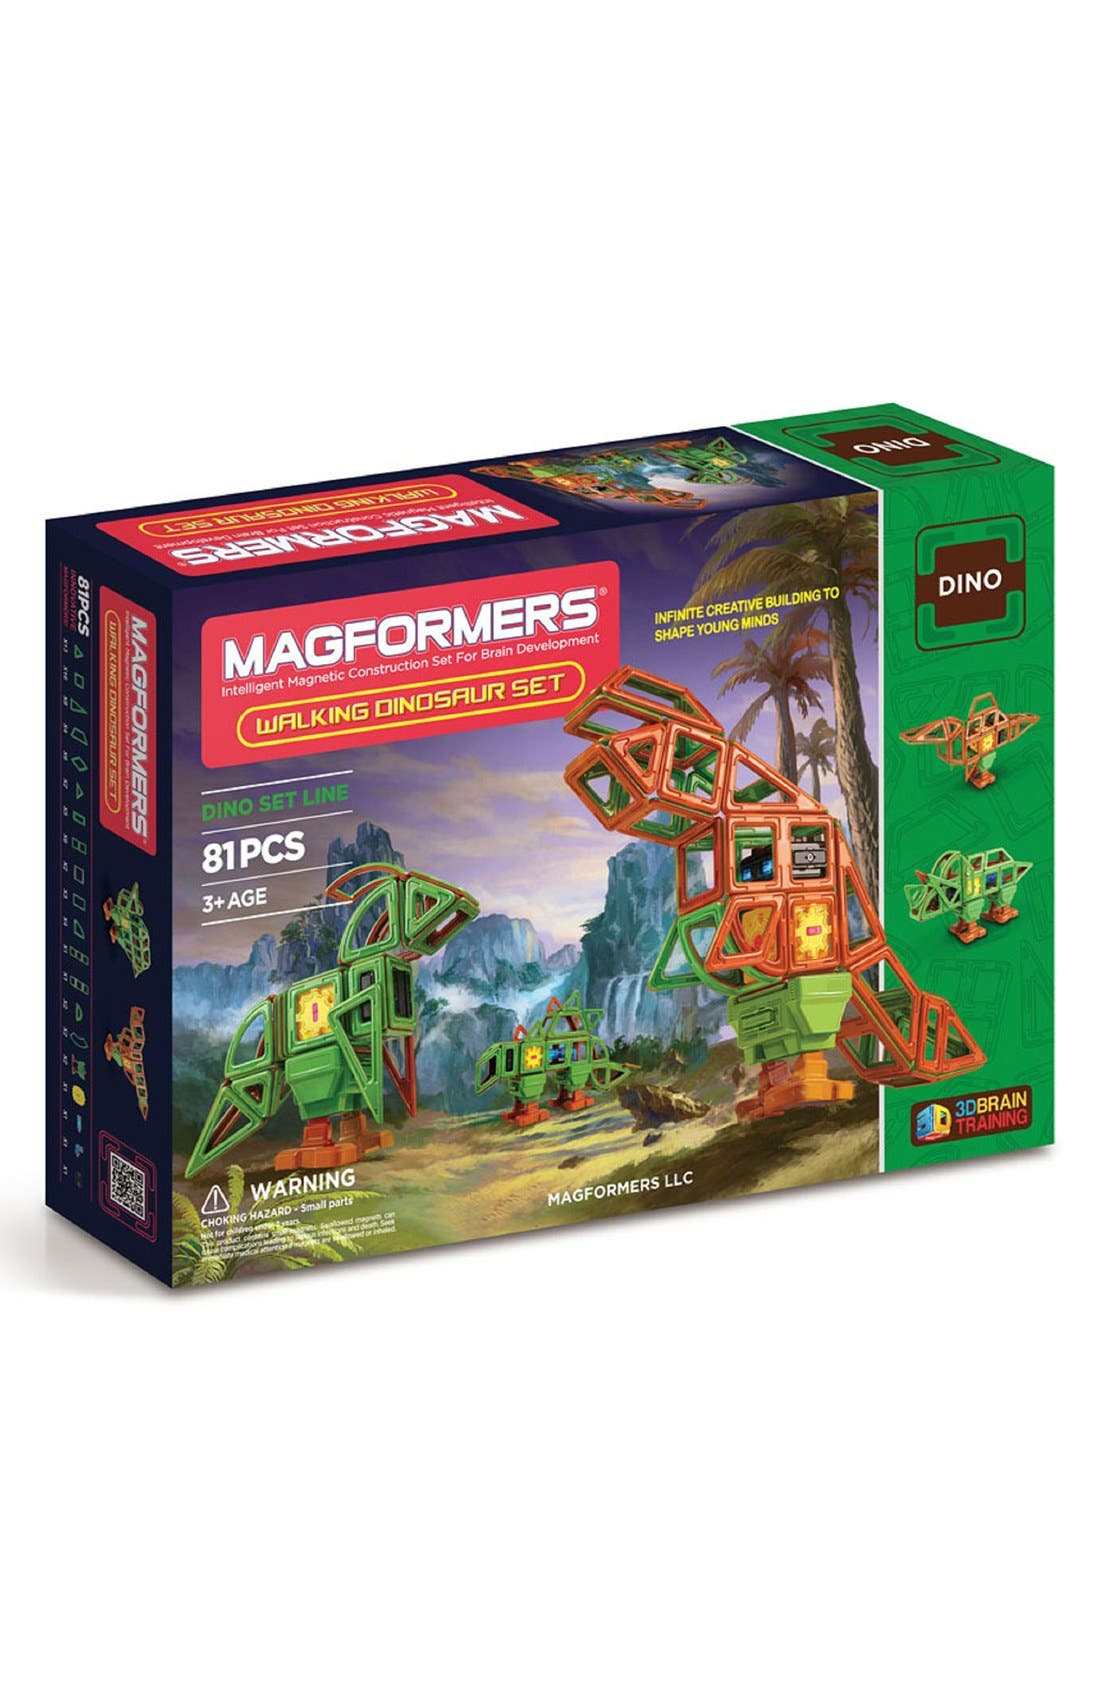 'Walking Dinosaur' Wind-Up Toy Magnetic Construction Set,                         Main,                         color, Green/ Brown